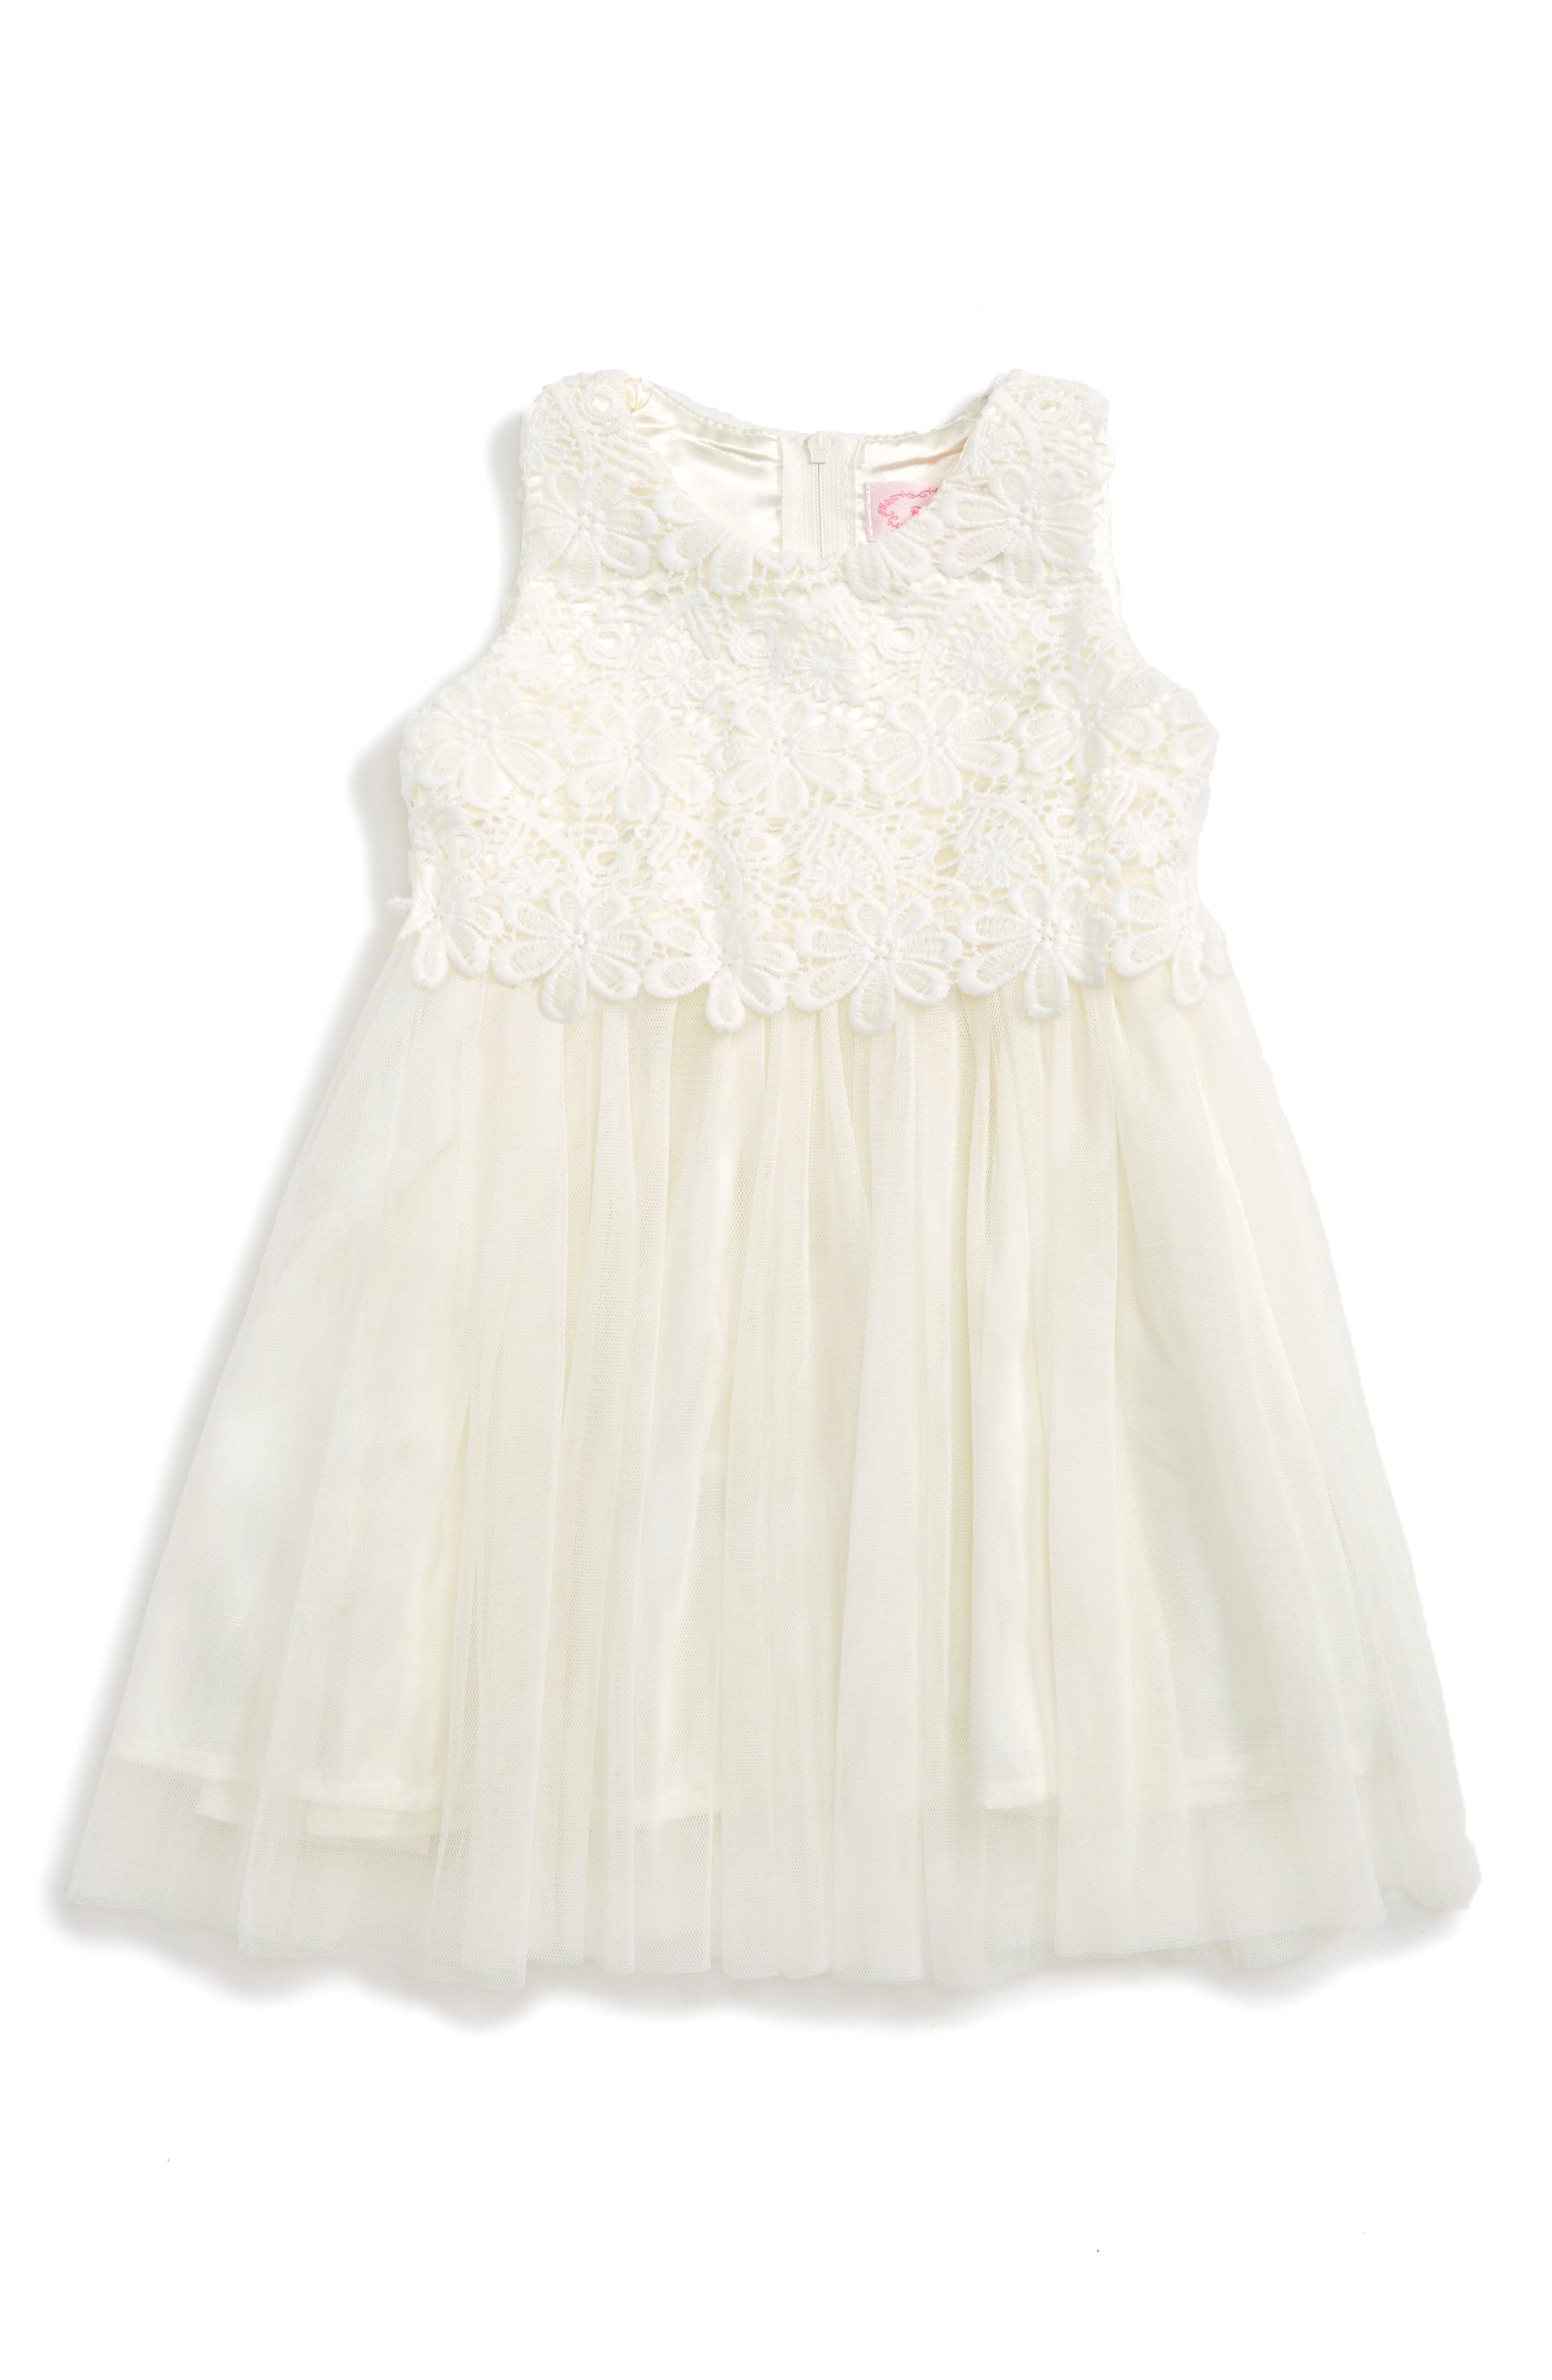 Lace & Tulle Dress,                         Main,                         color, White